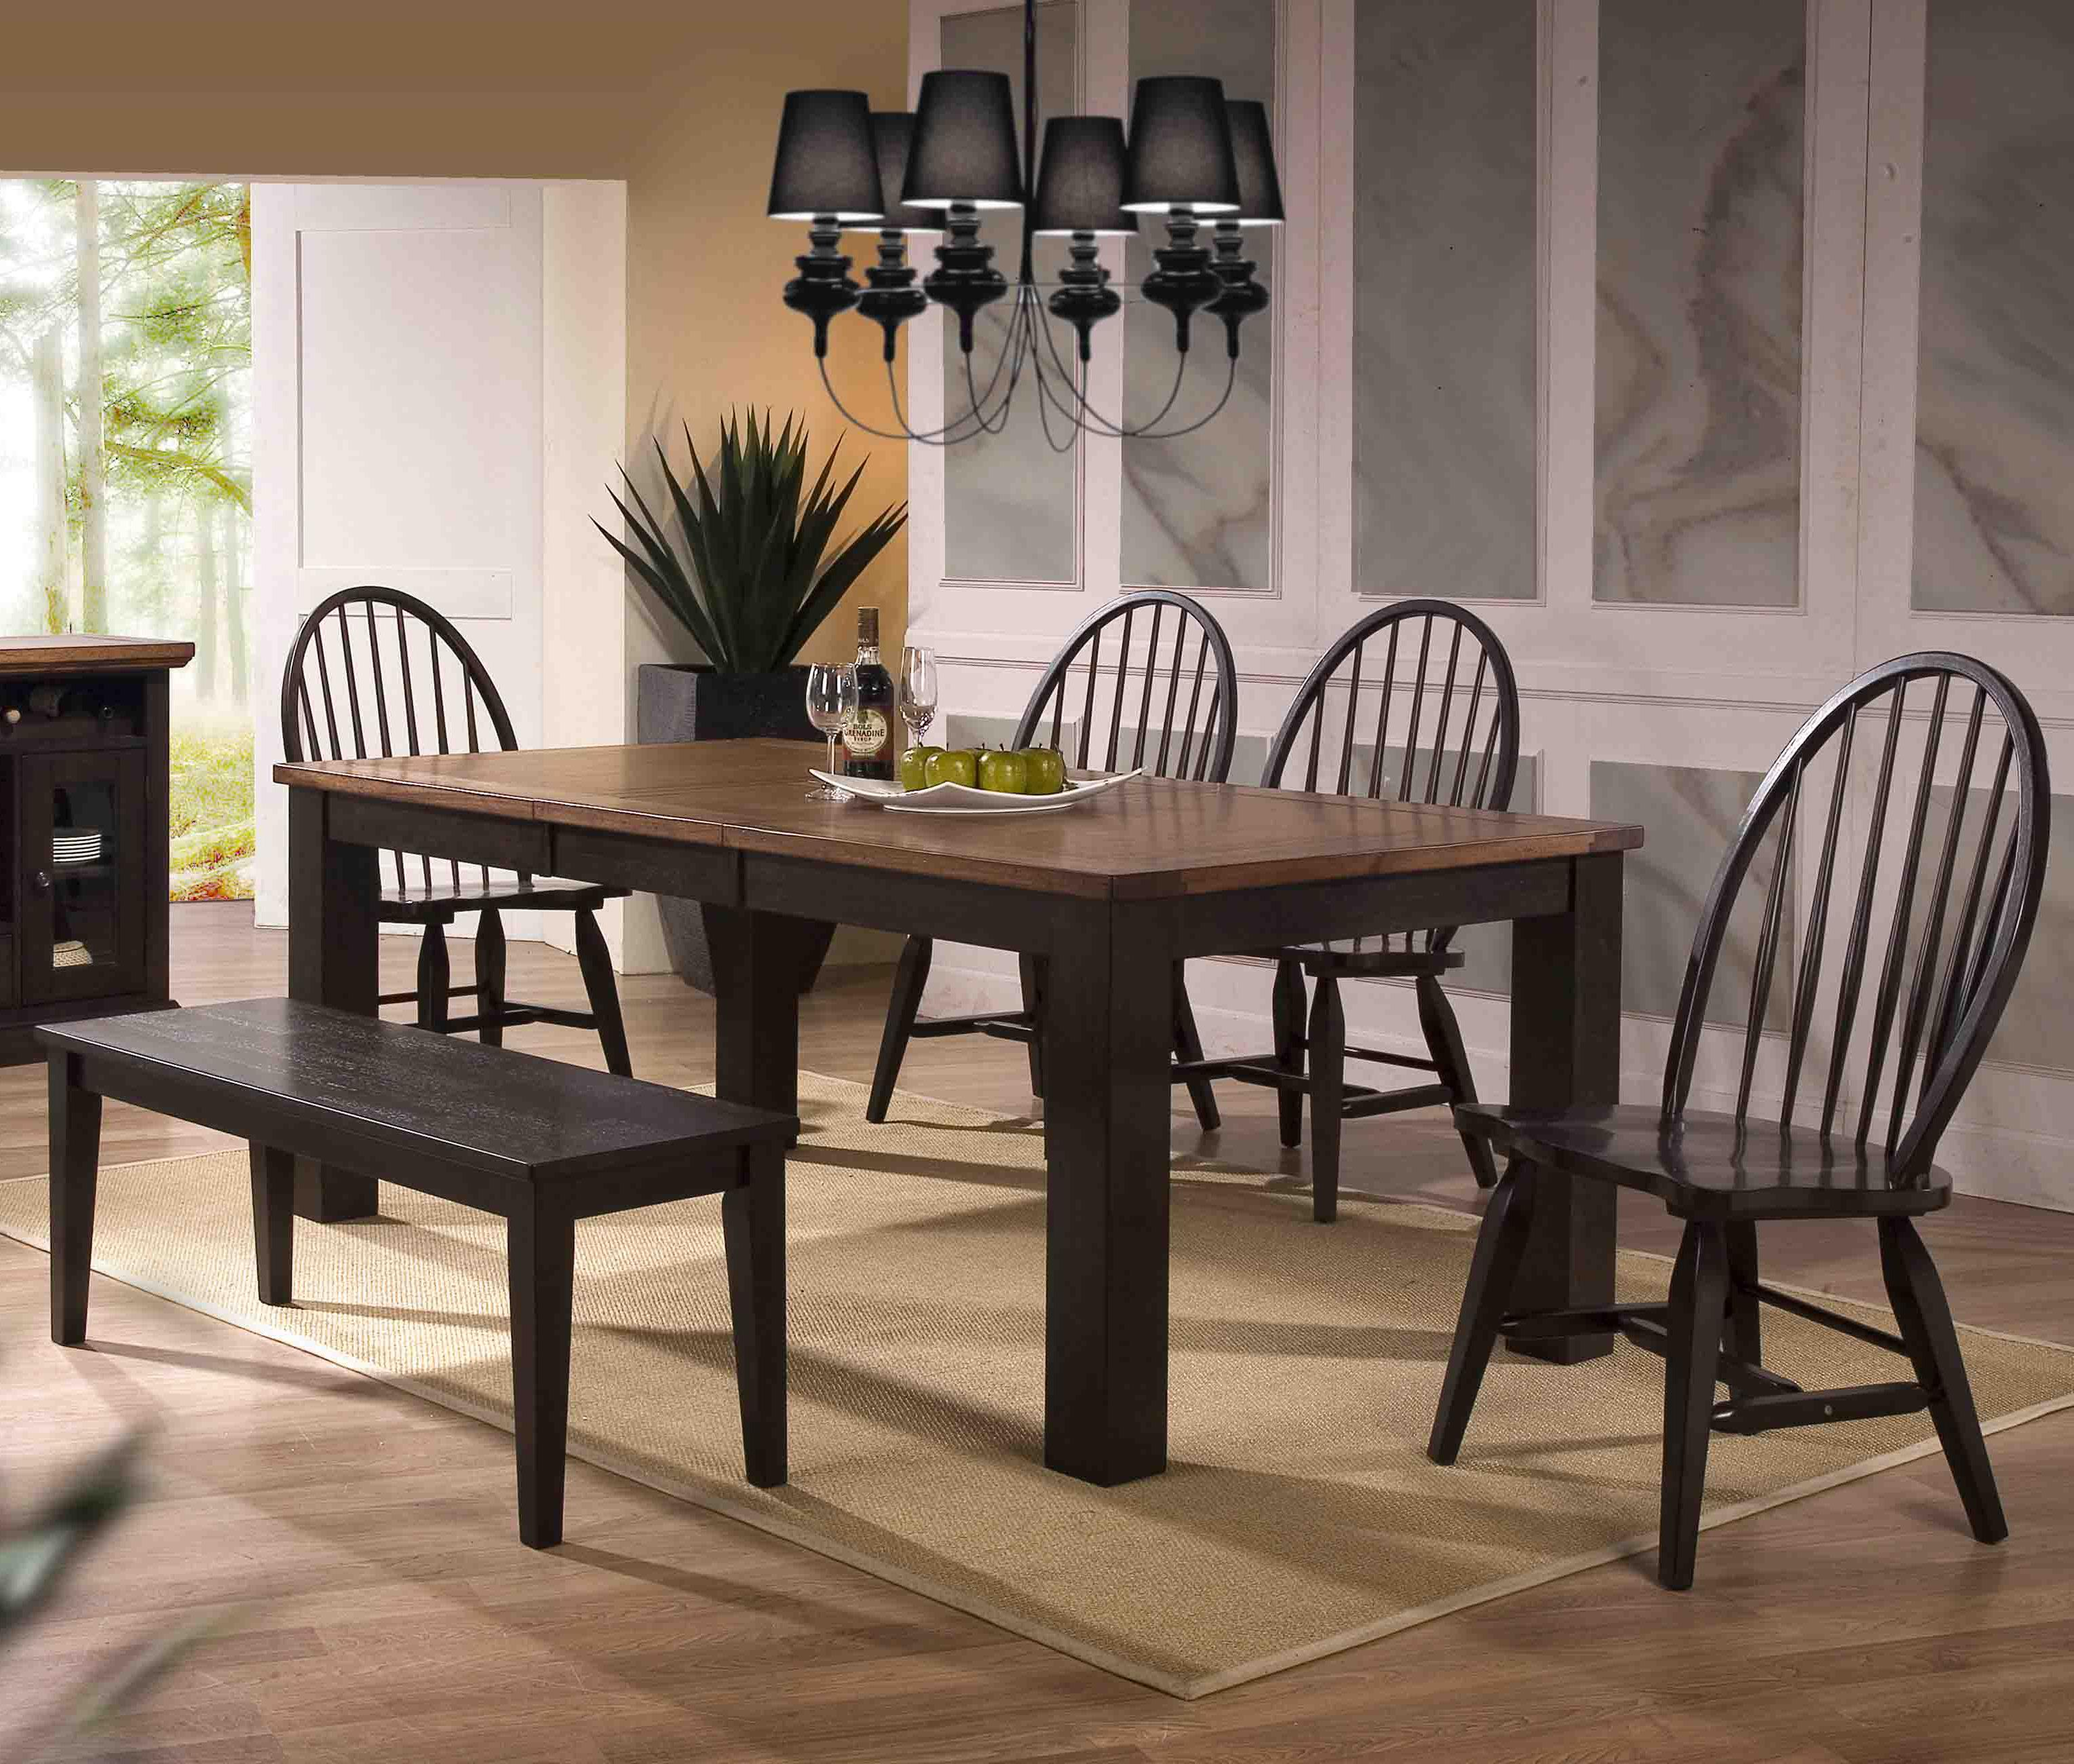 E.C.I. Furniture Acacia Table and Chair Set - Item Number: 3073-00-T+4xS+B